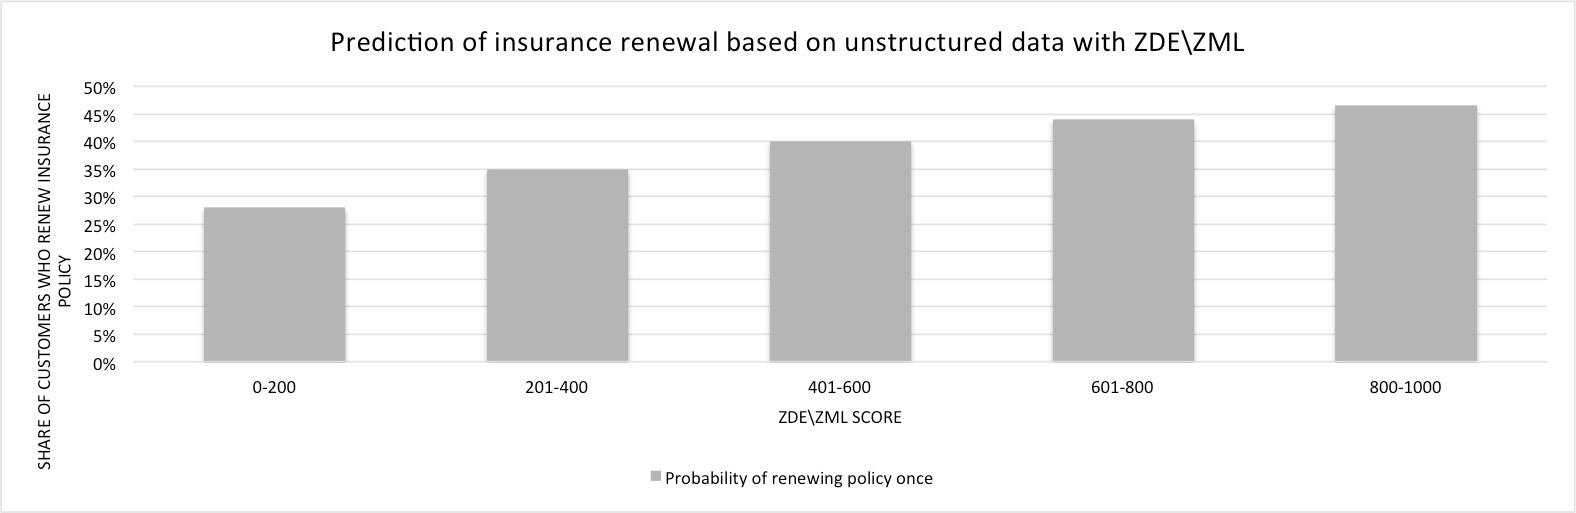 Prediction of insurance renewal based on unstructured data with ZDE/ZML